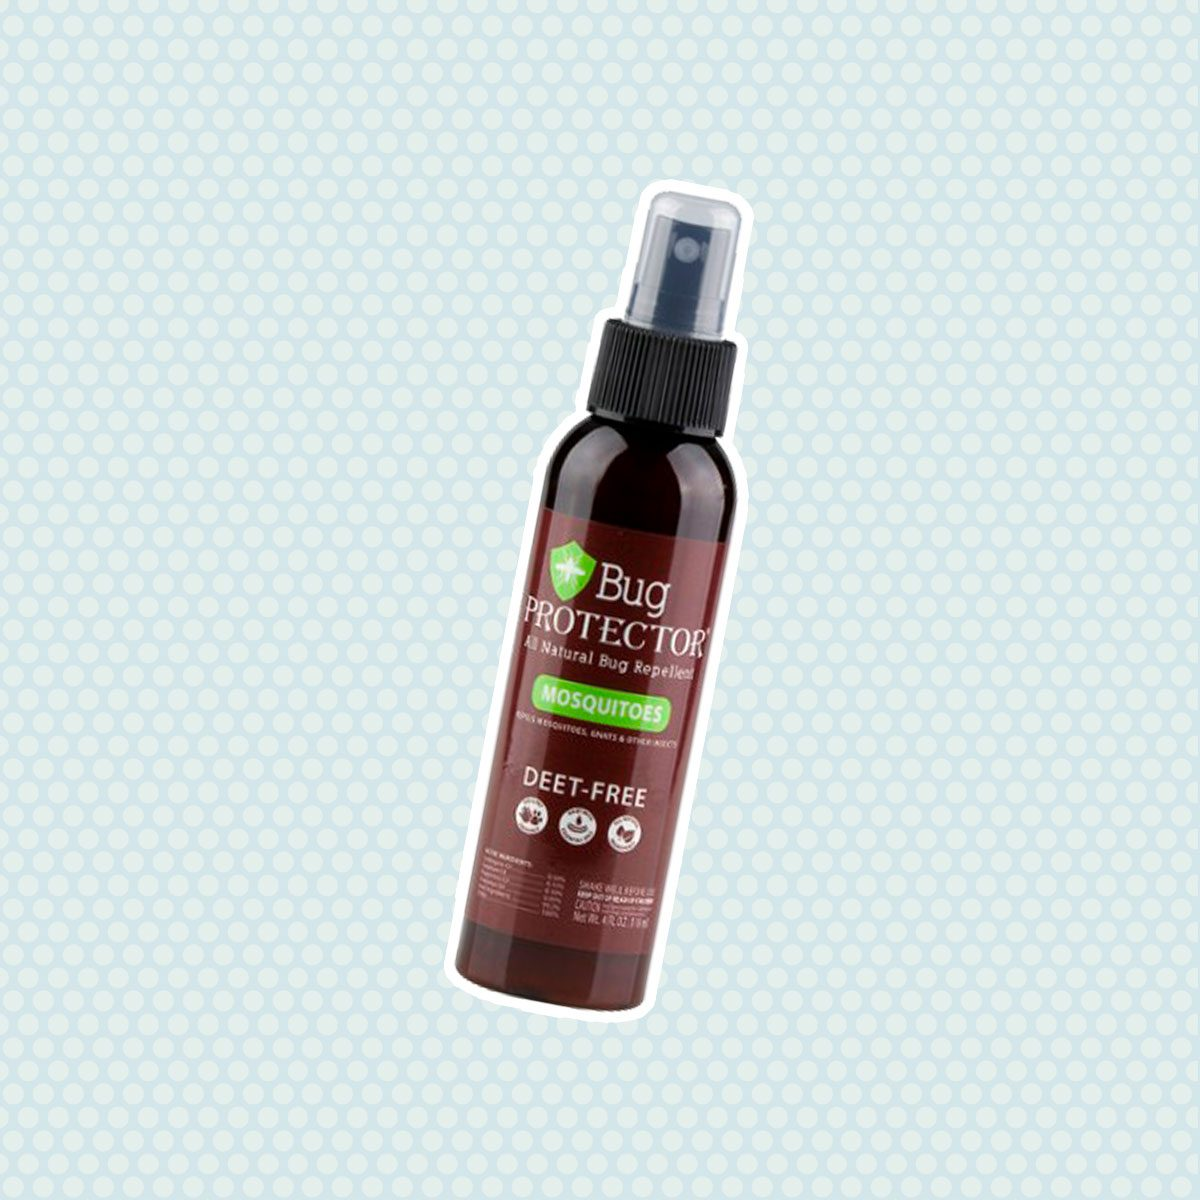 Bug Protector Mosquitoes All Natural Bug Repellent